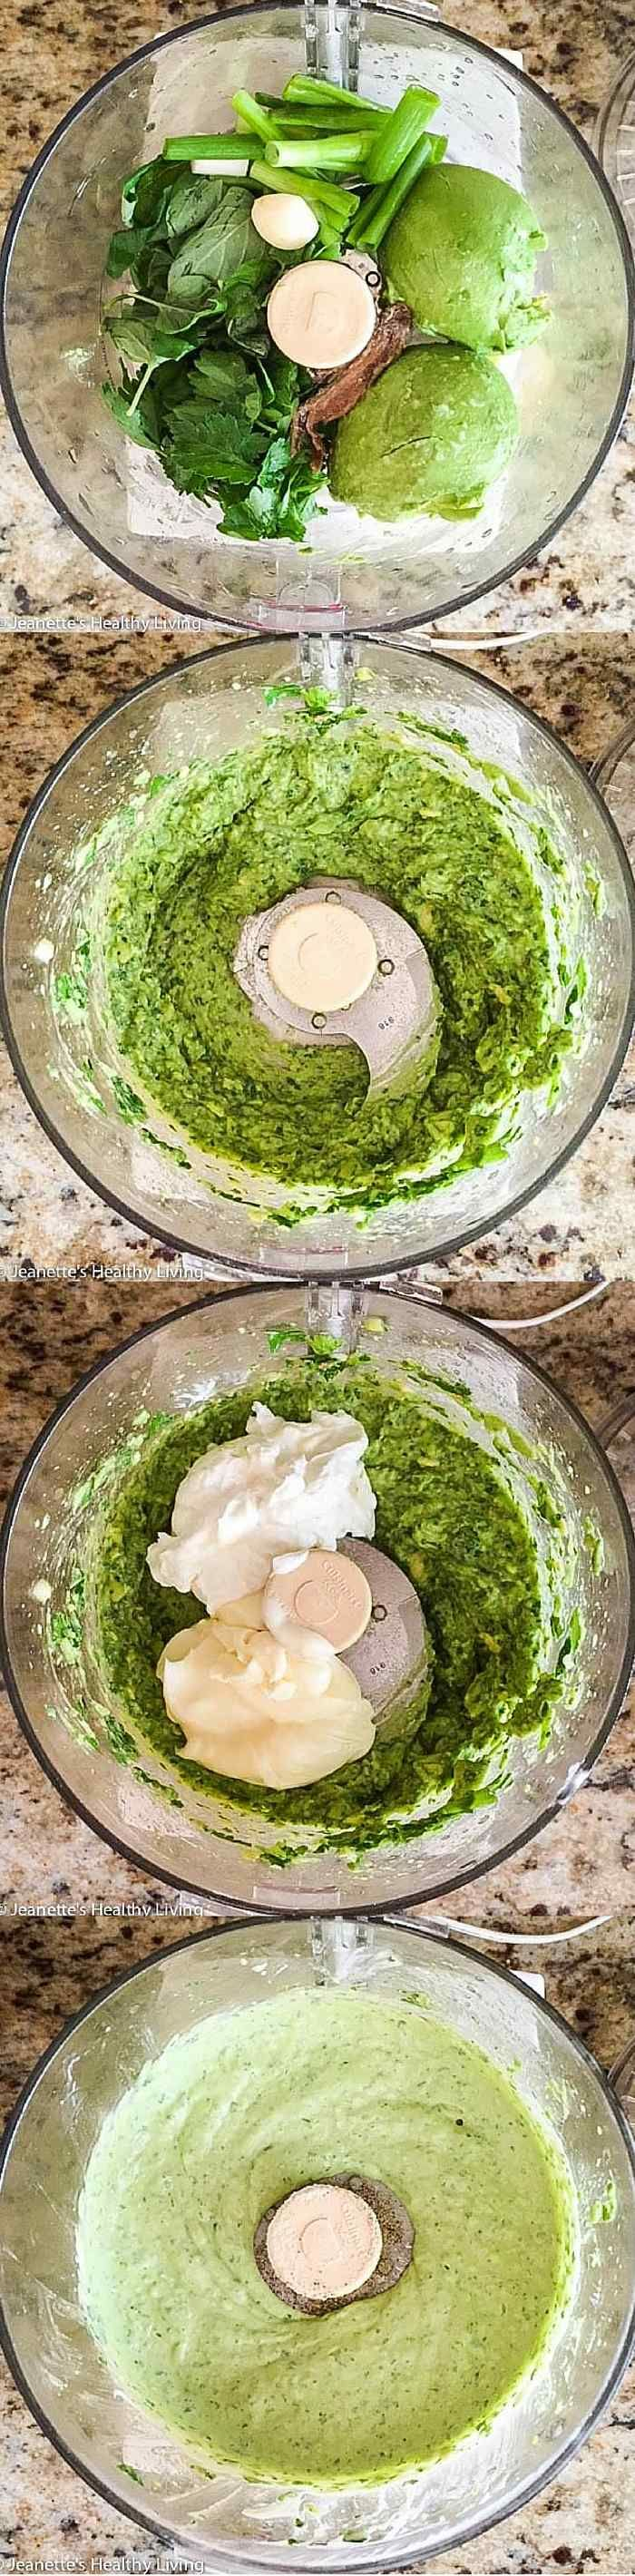 Avocado Greek Yogurt Green Goddess Dip - this light dip, made with fresh avocado and Greek yogurt, is creamy and delicious - serve with an assortment of veggies for your next party ~ http://jeanetteshealthyliving.com